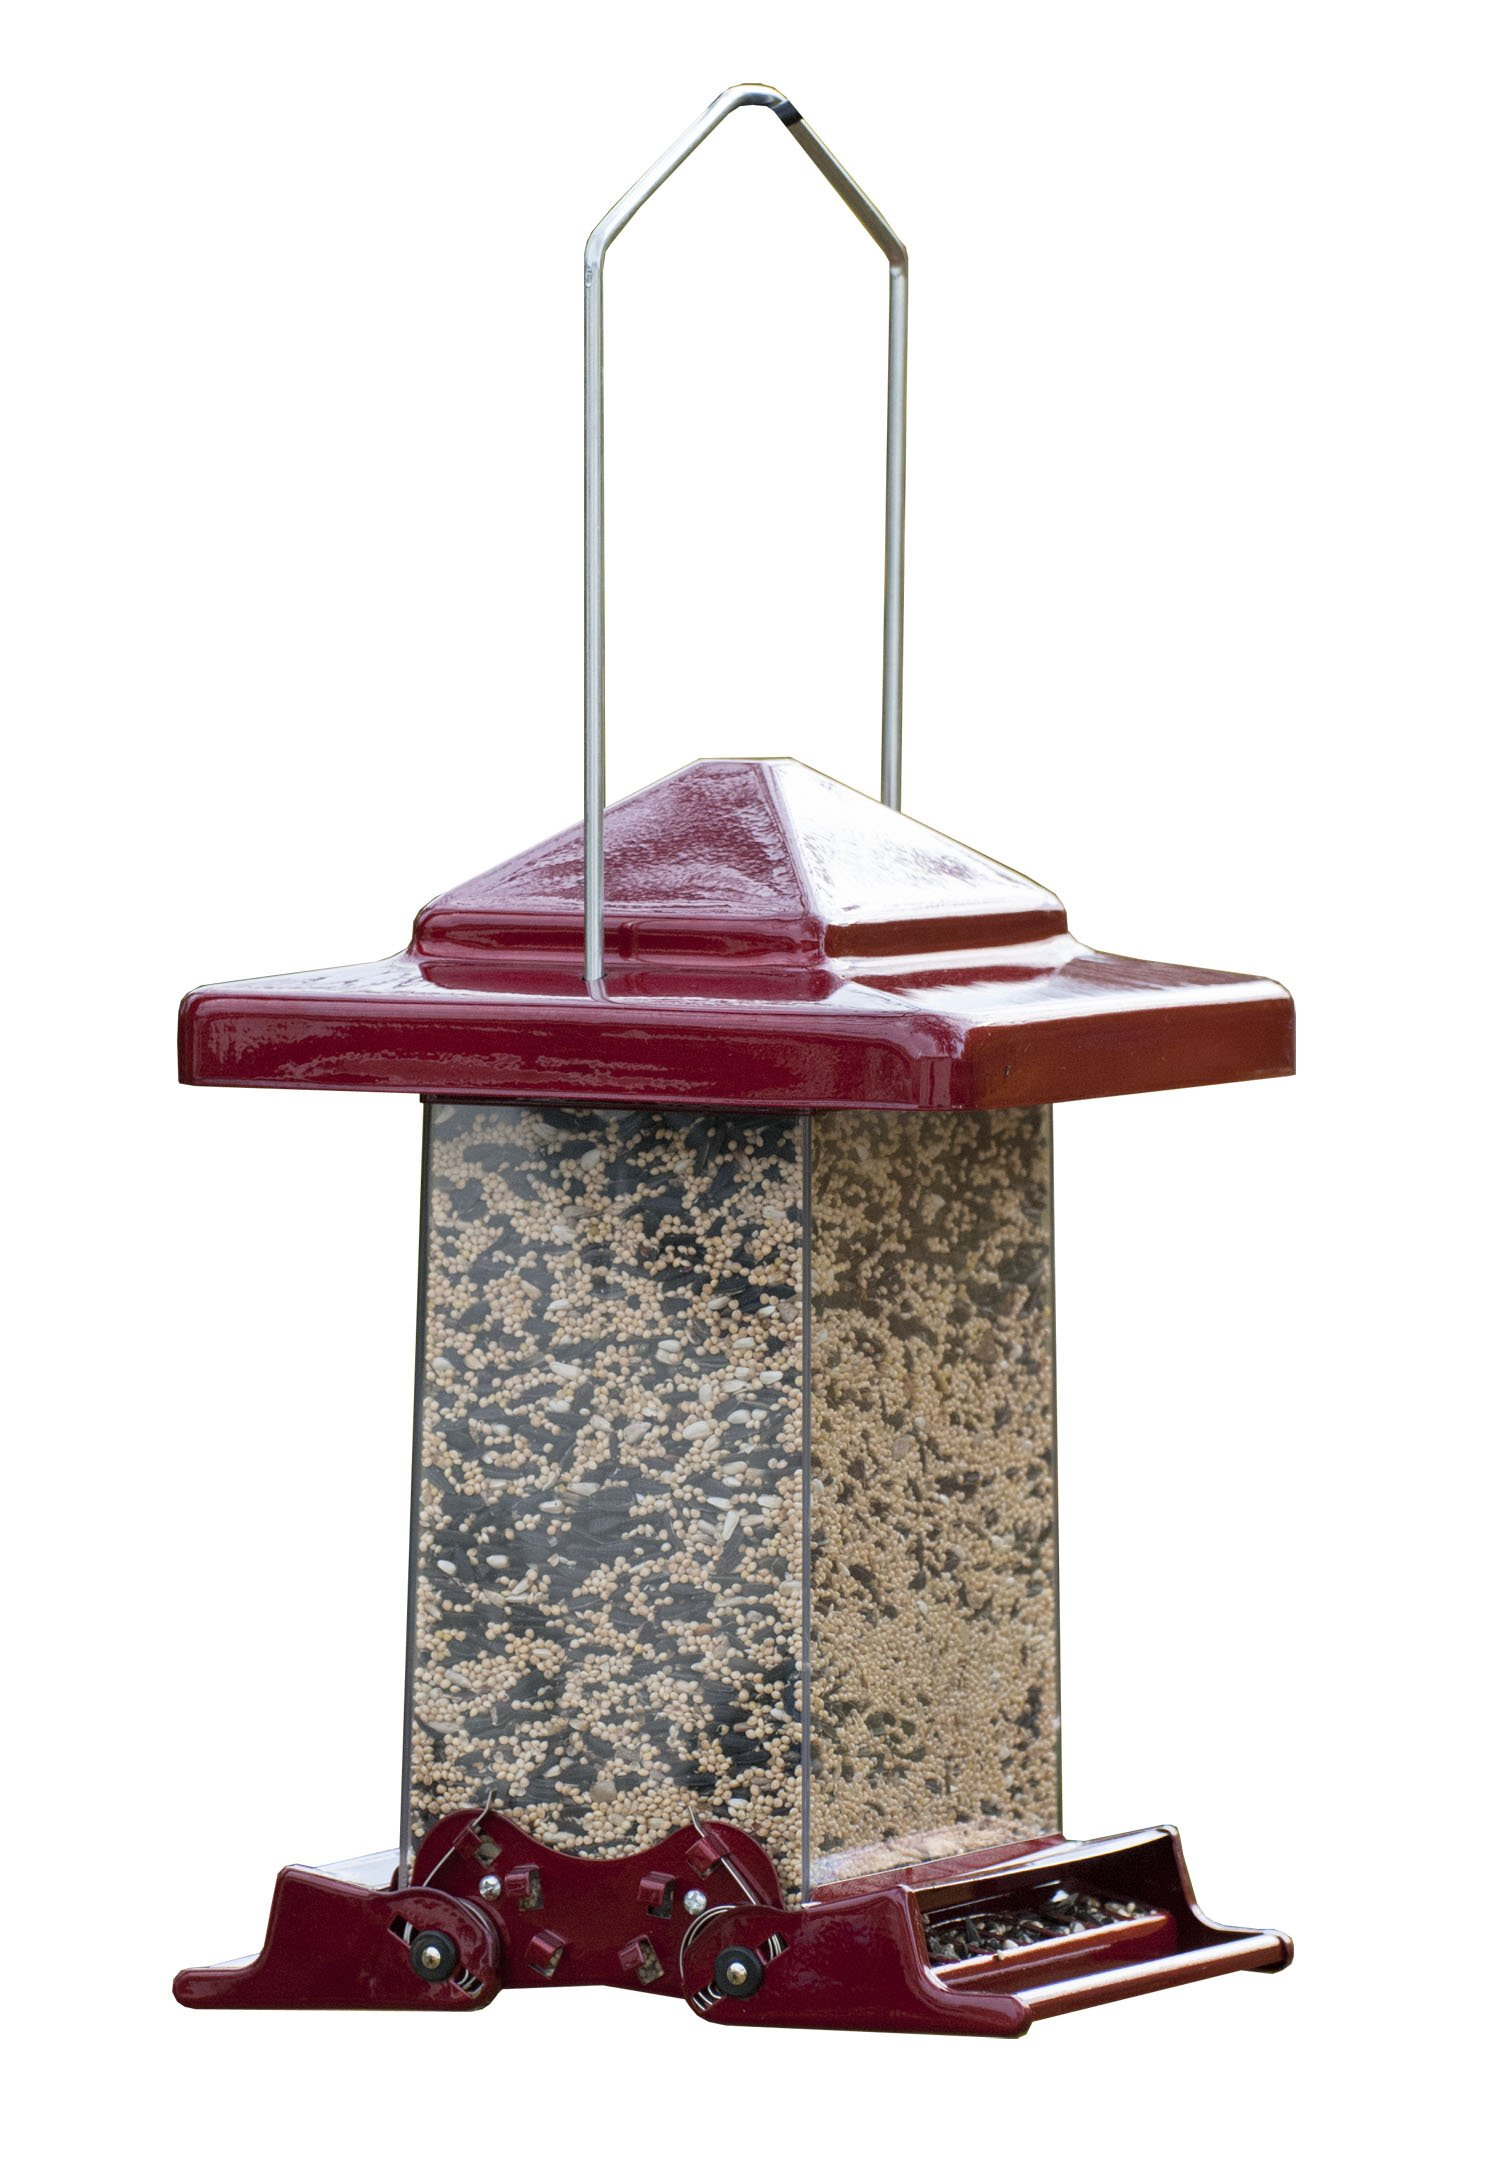 Woodlink WL75160 Reflective Red Vista Squirrel-Resistant Feeder